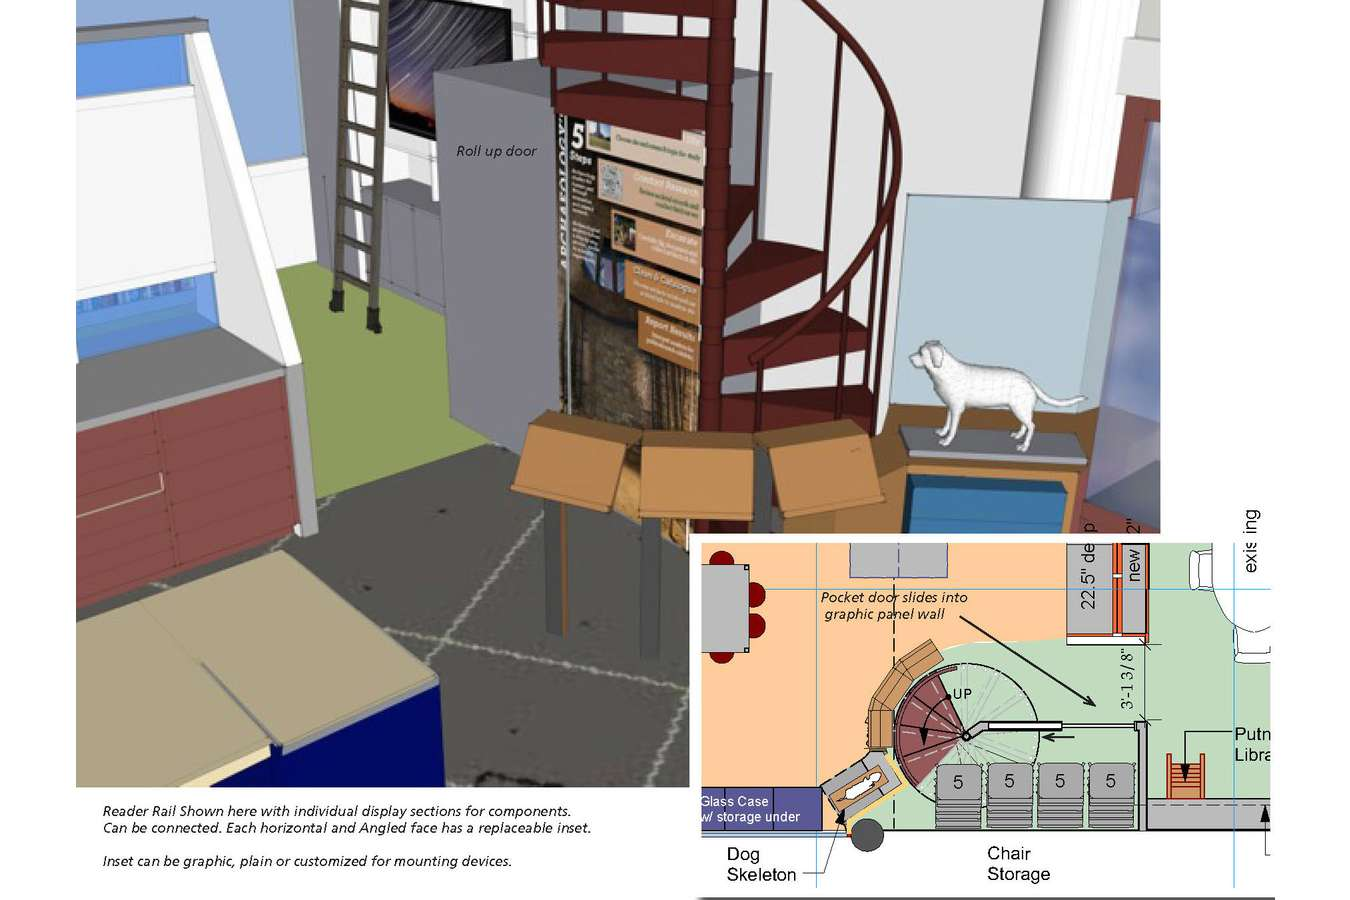 6 CAAM stair view : Spiral stairway access to staff offices, surrounded with display and storage areas